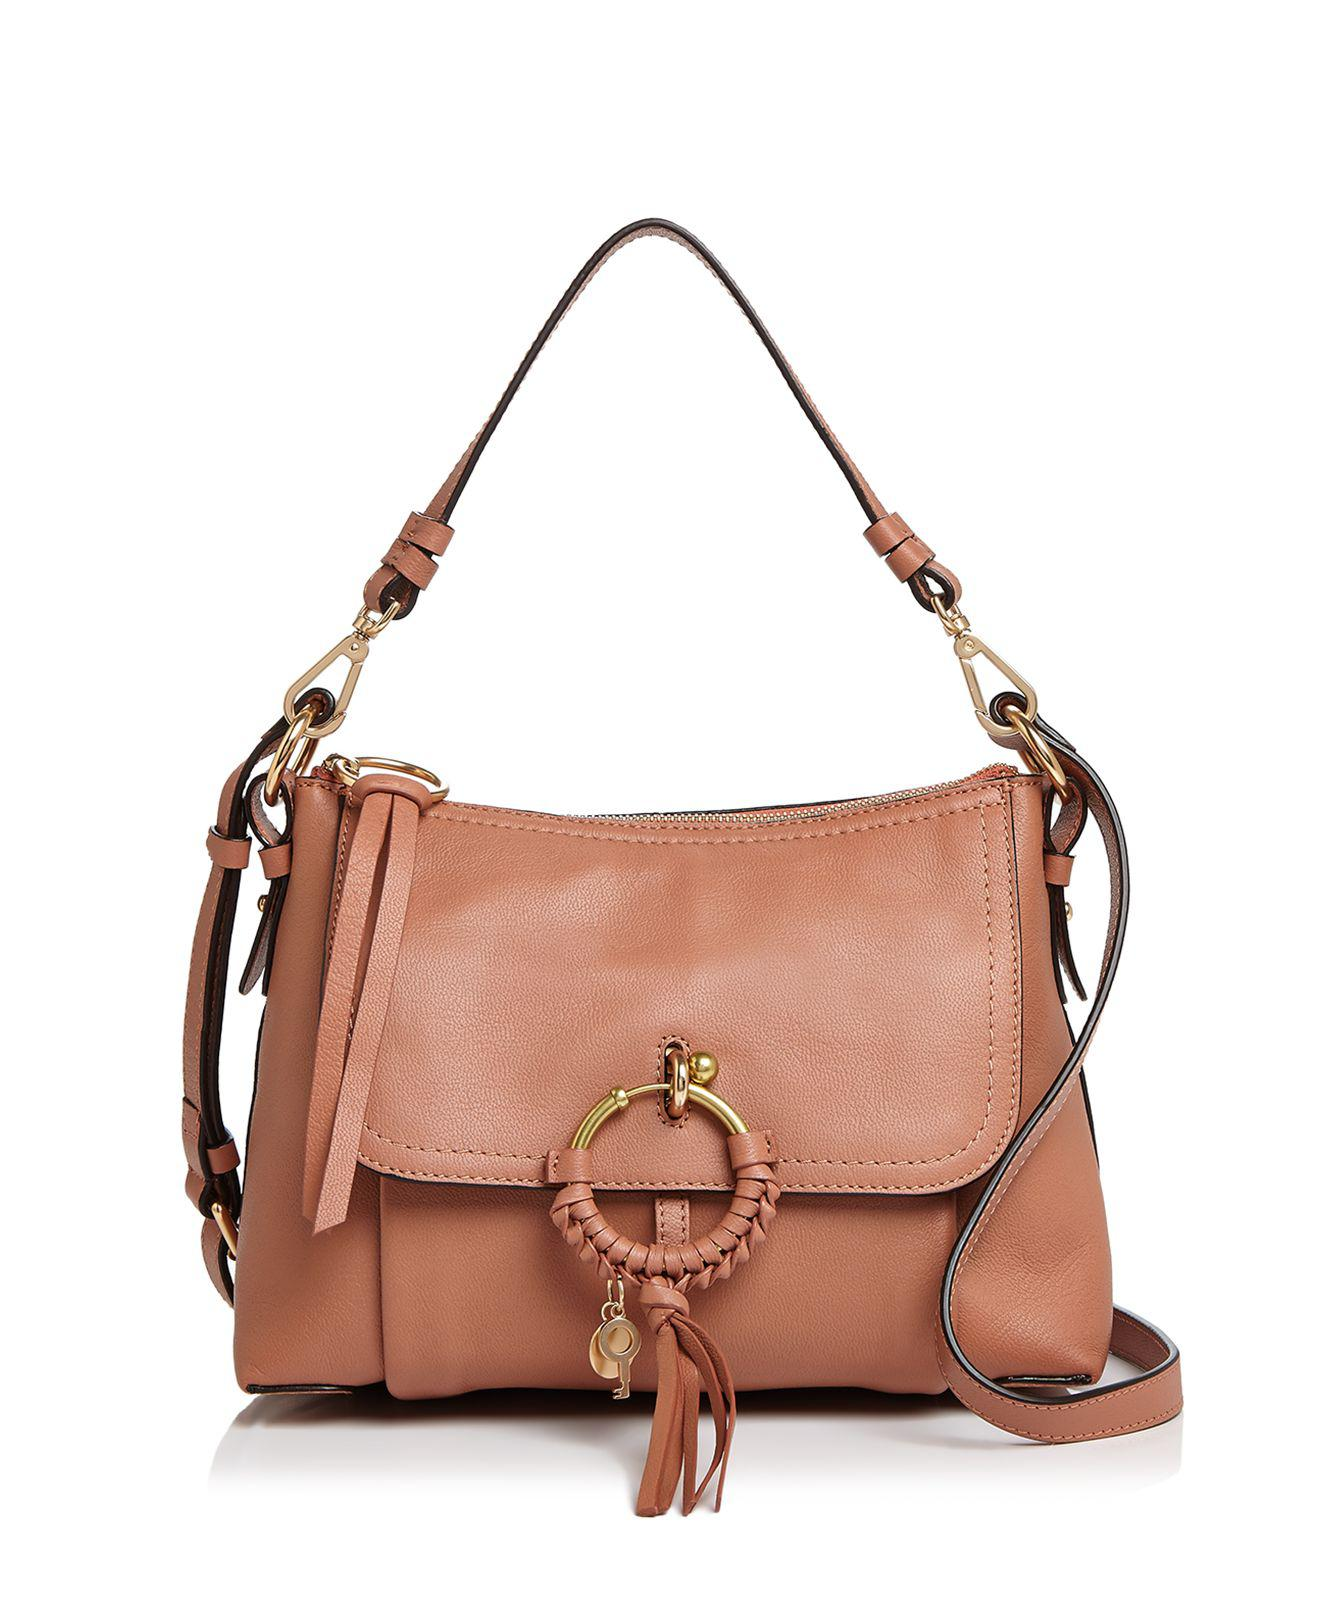 Joan Small Whipstitched Suede-paneled Textured-leather Shoulder Bag - Tan See By Chlo 9ravlu8u